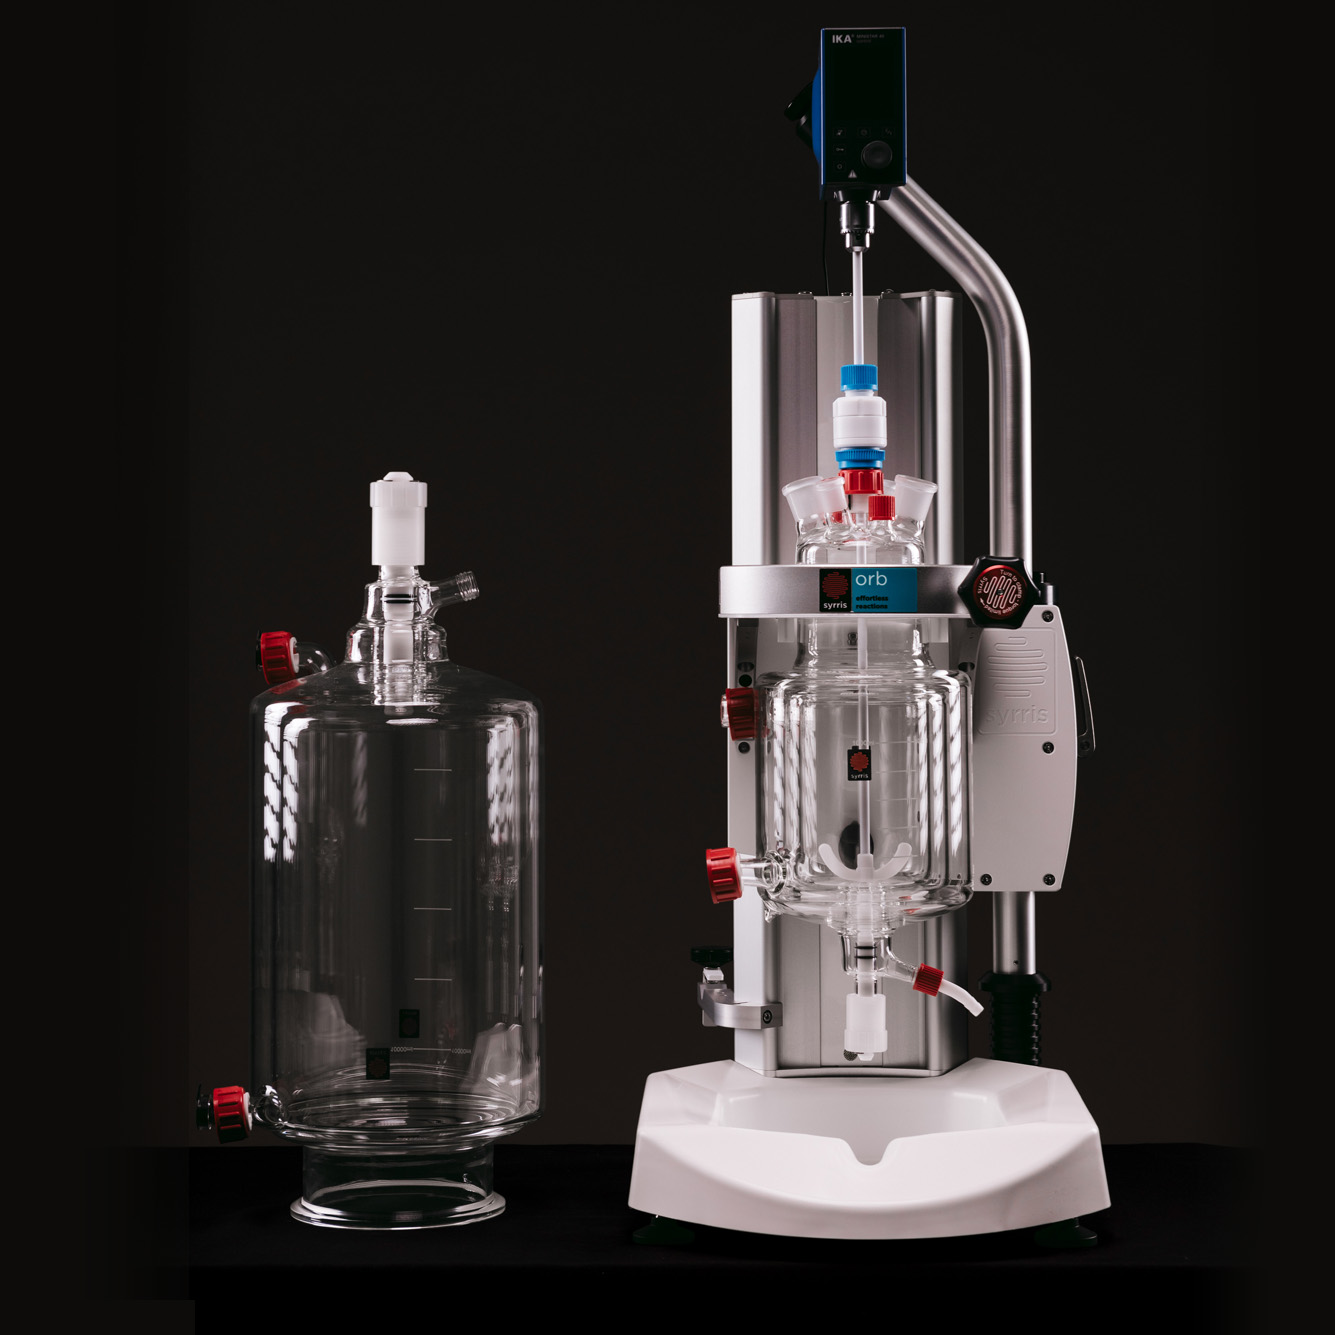 Orb Jacketed Reactor 20 mL to 20 L chemical reactor system